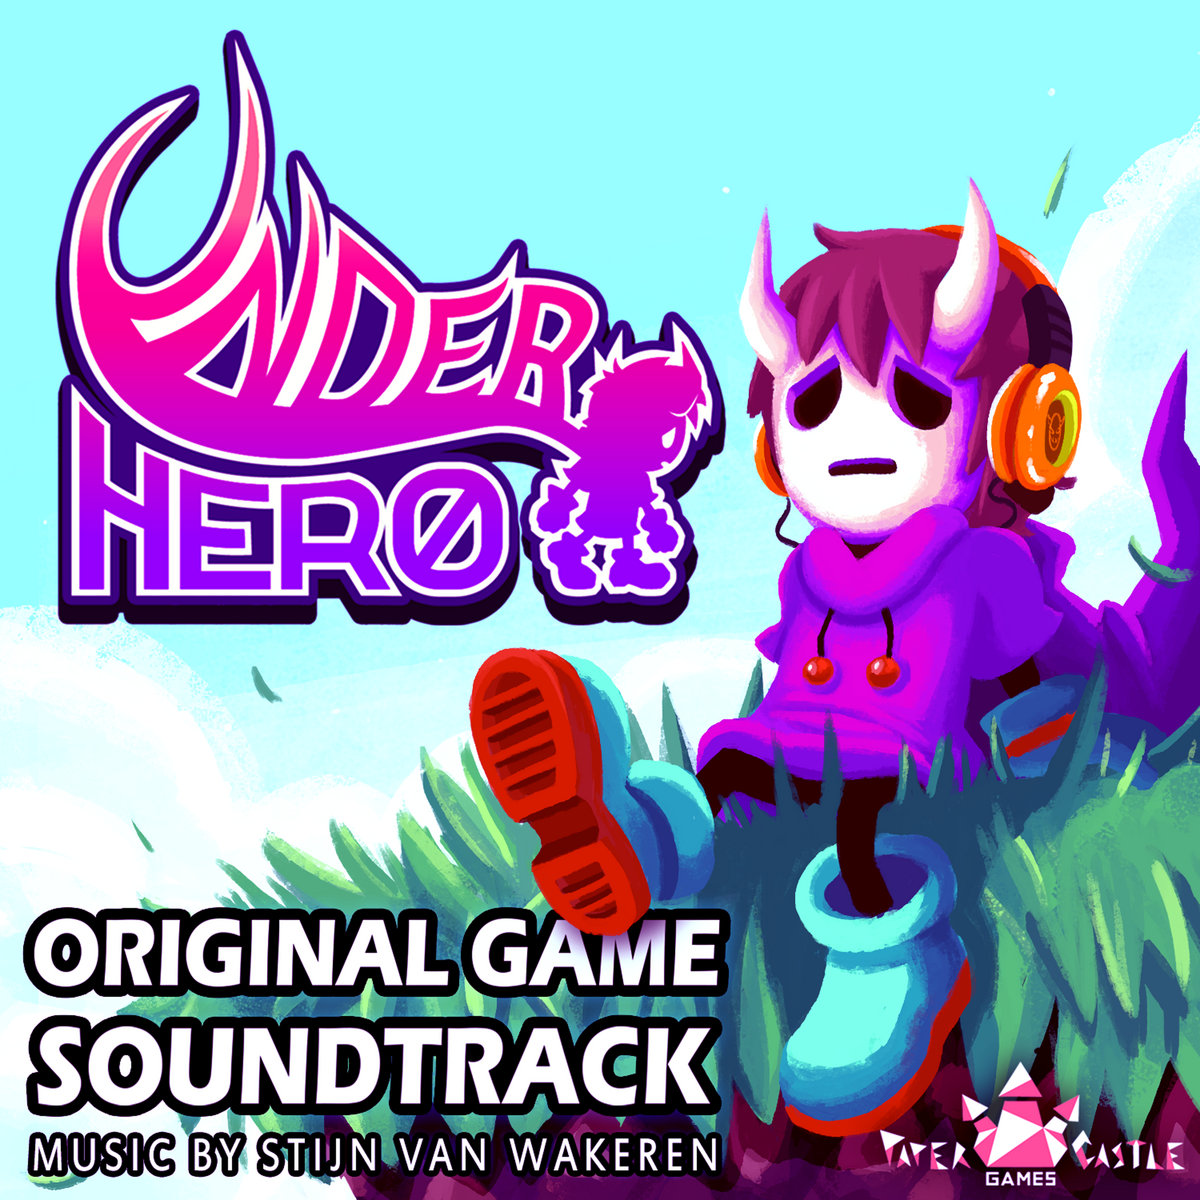 Underhero (Original Game Soundtrack) | StijnvanWakeren